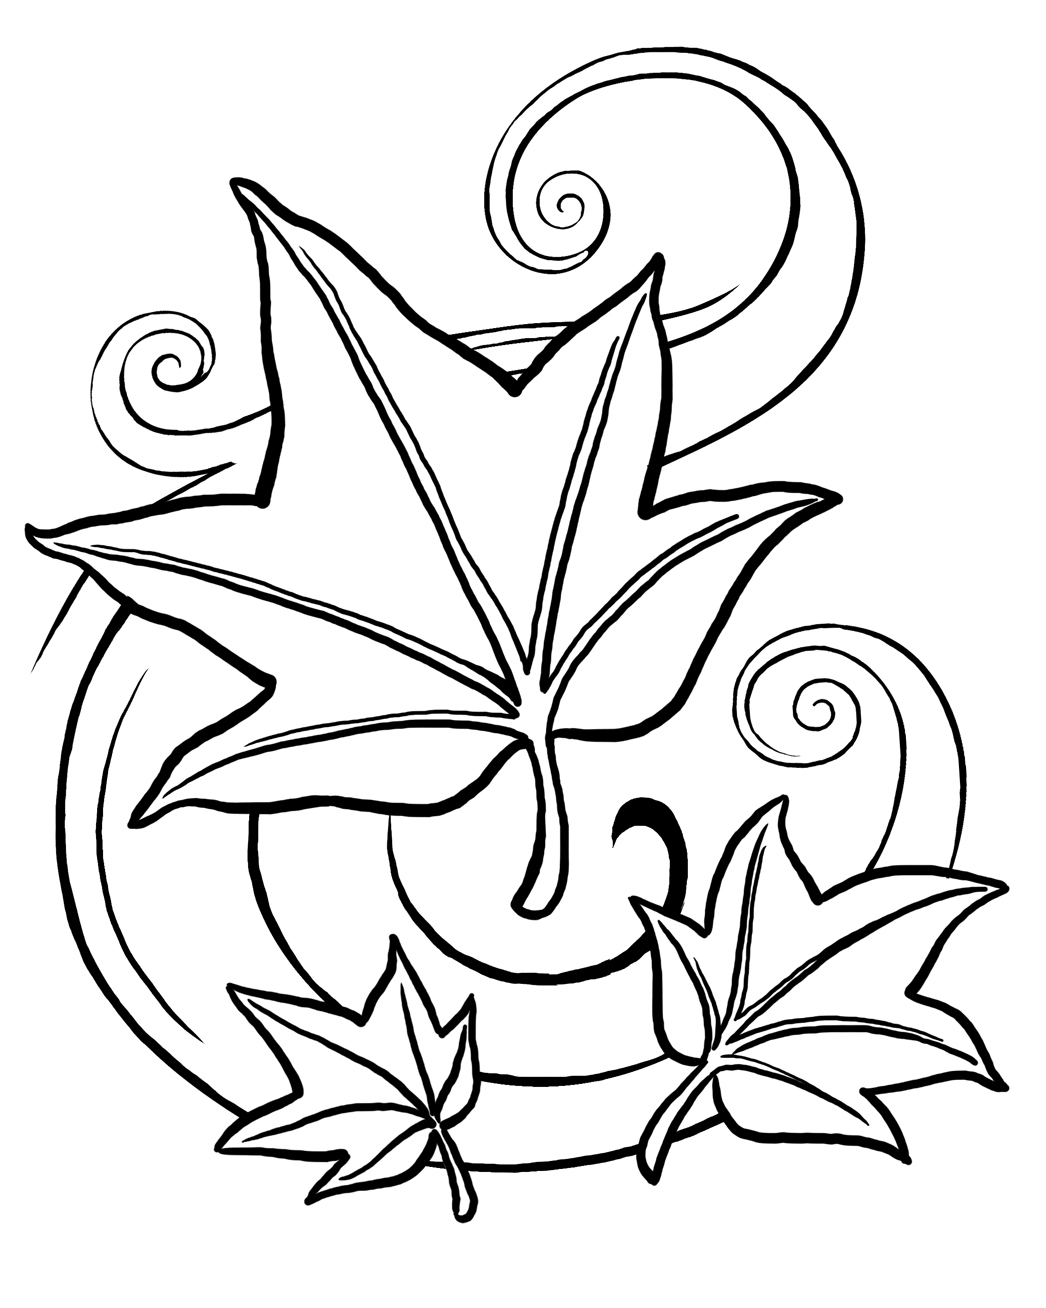 1046x1308 Free Printable Leaf Coloring Pages For Kids